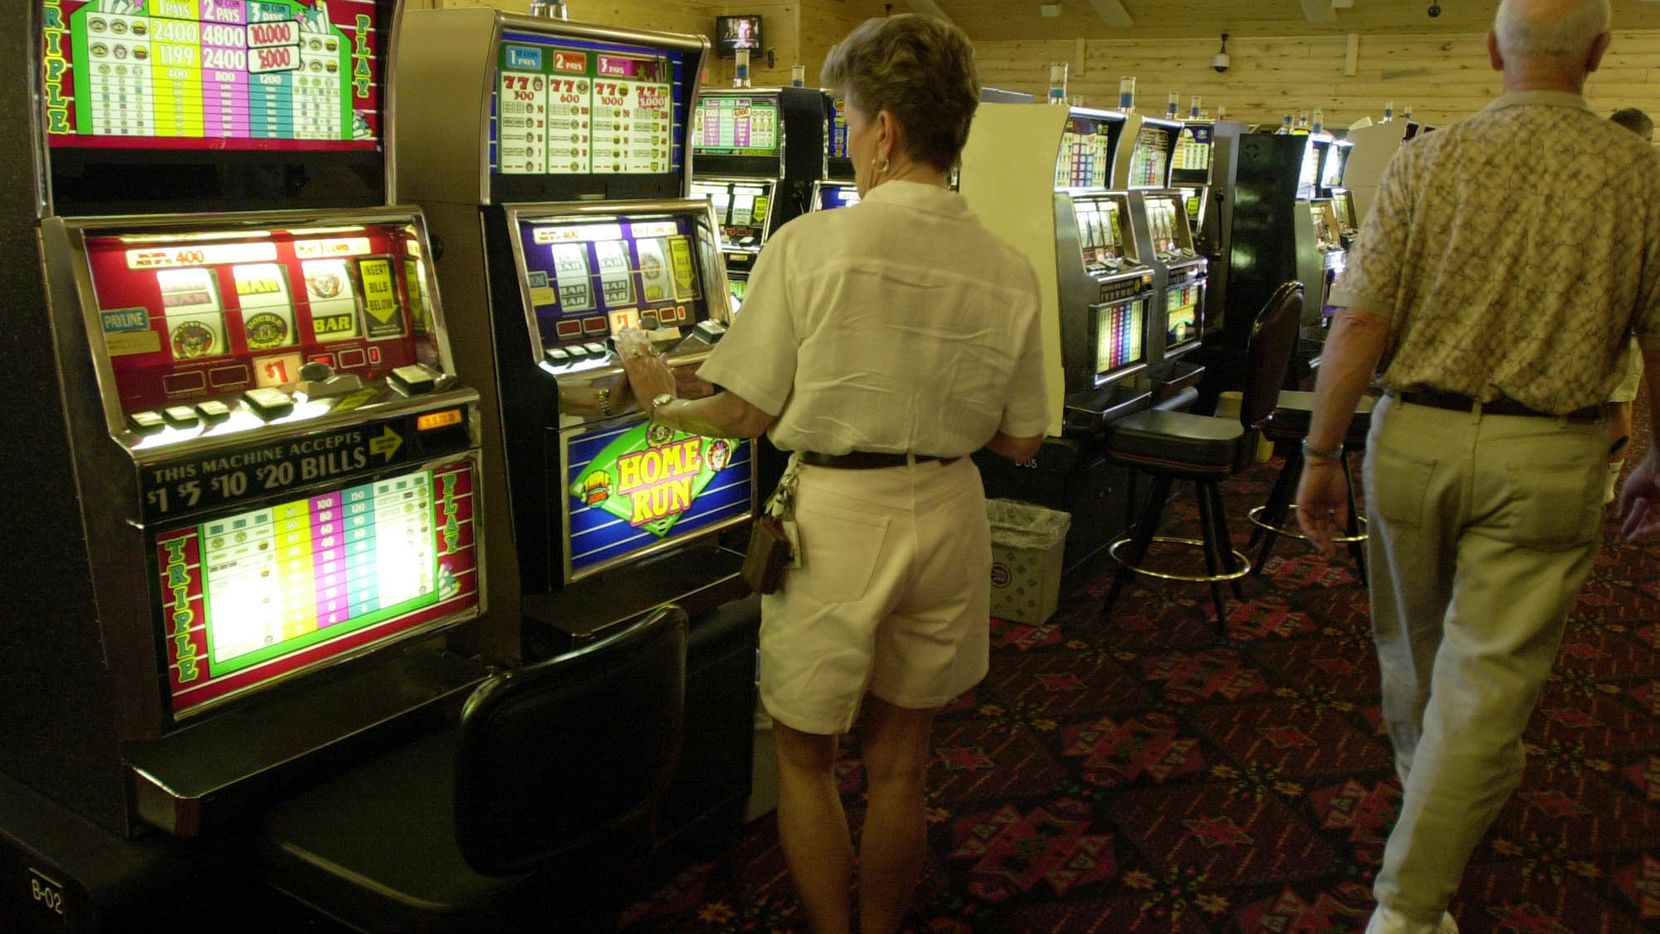 Slot machines have even worse odds than roulette.